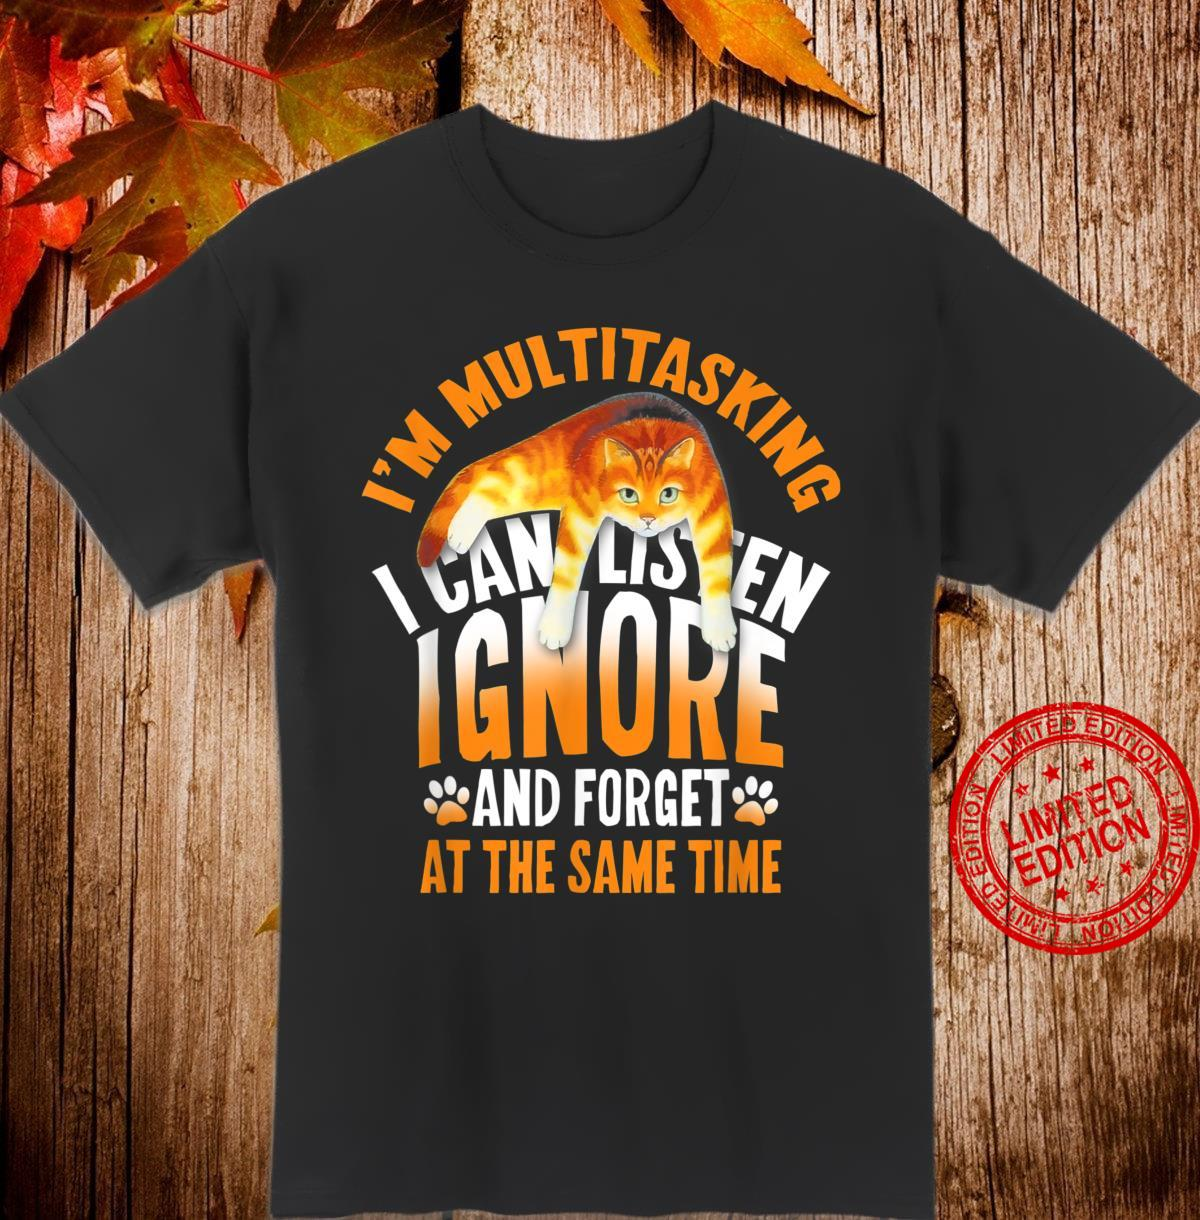 I'M MULTITASKING I CAN LISTEN IGNORE FORGET THE SAME TIME Shirt